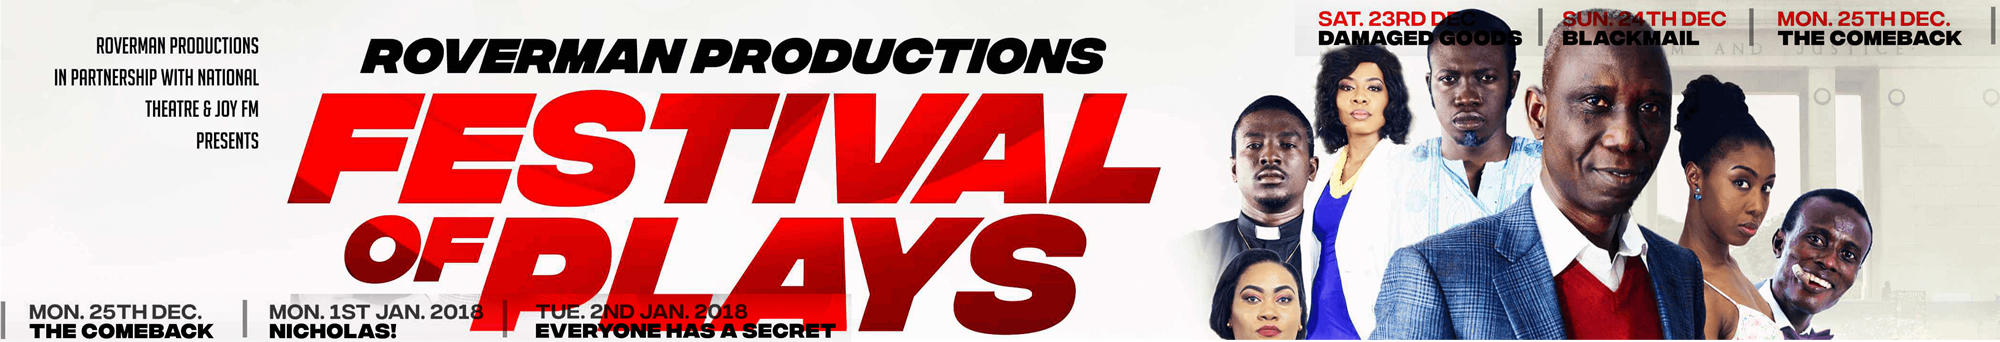 Roverman Productions: Festival of Plays